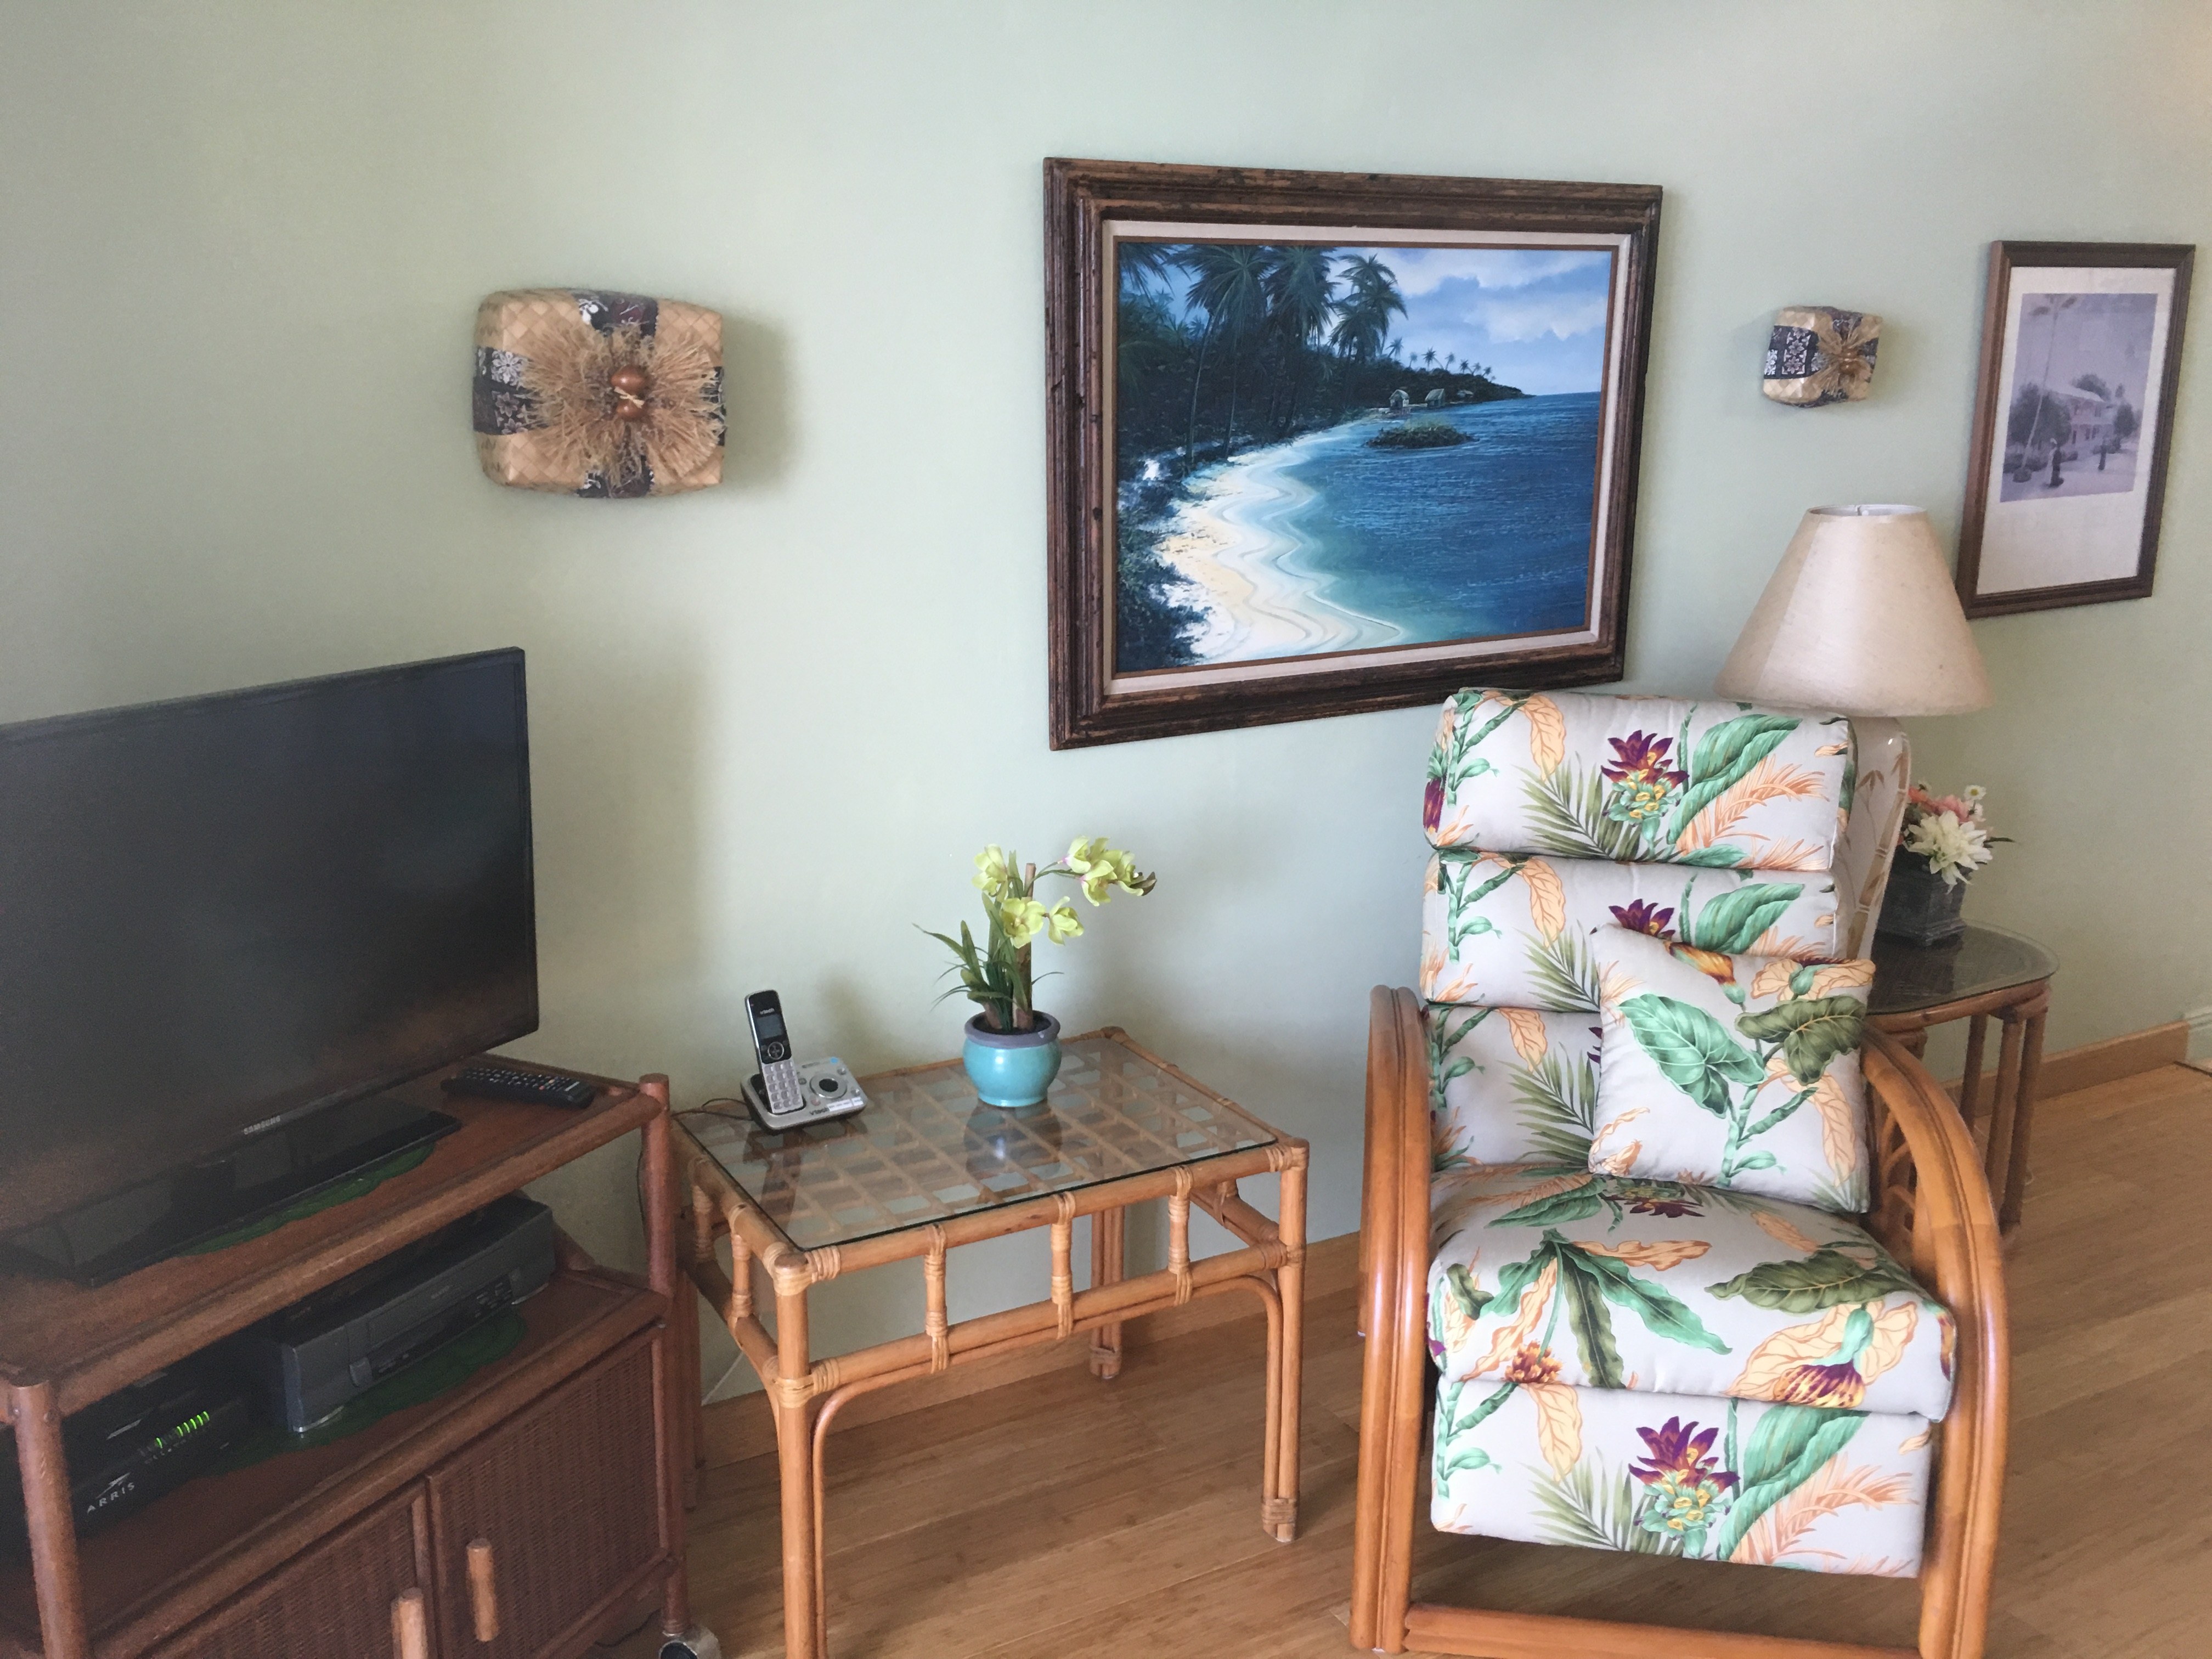 Reclining chair to watch the ocean or cable TV.